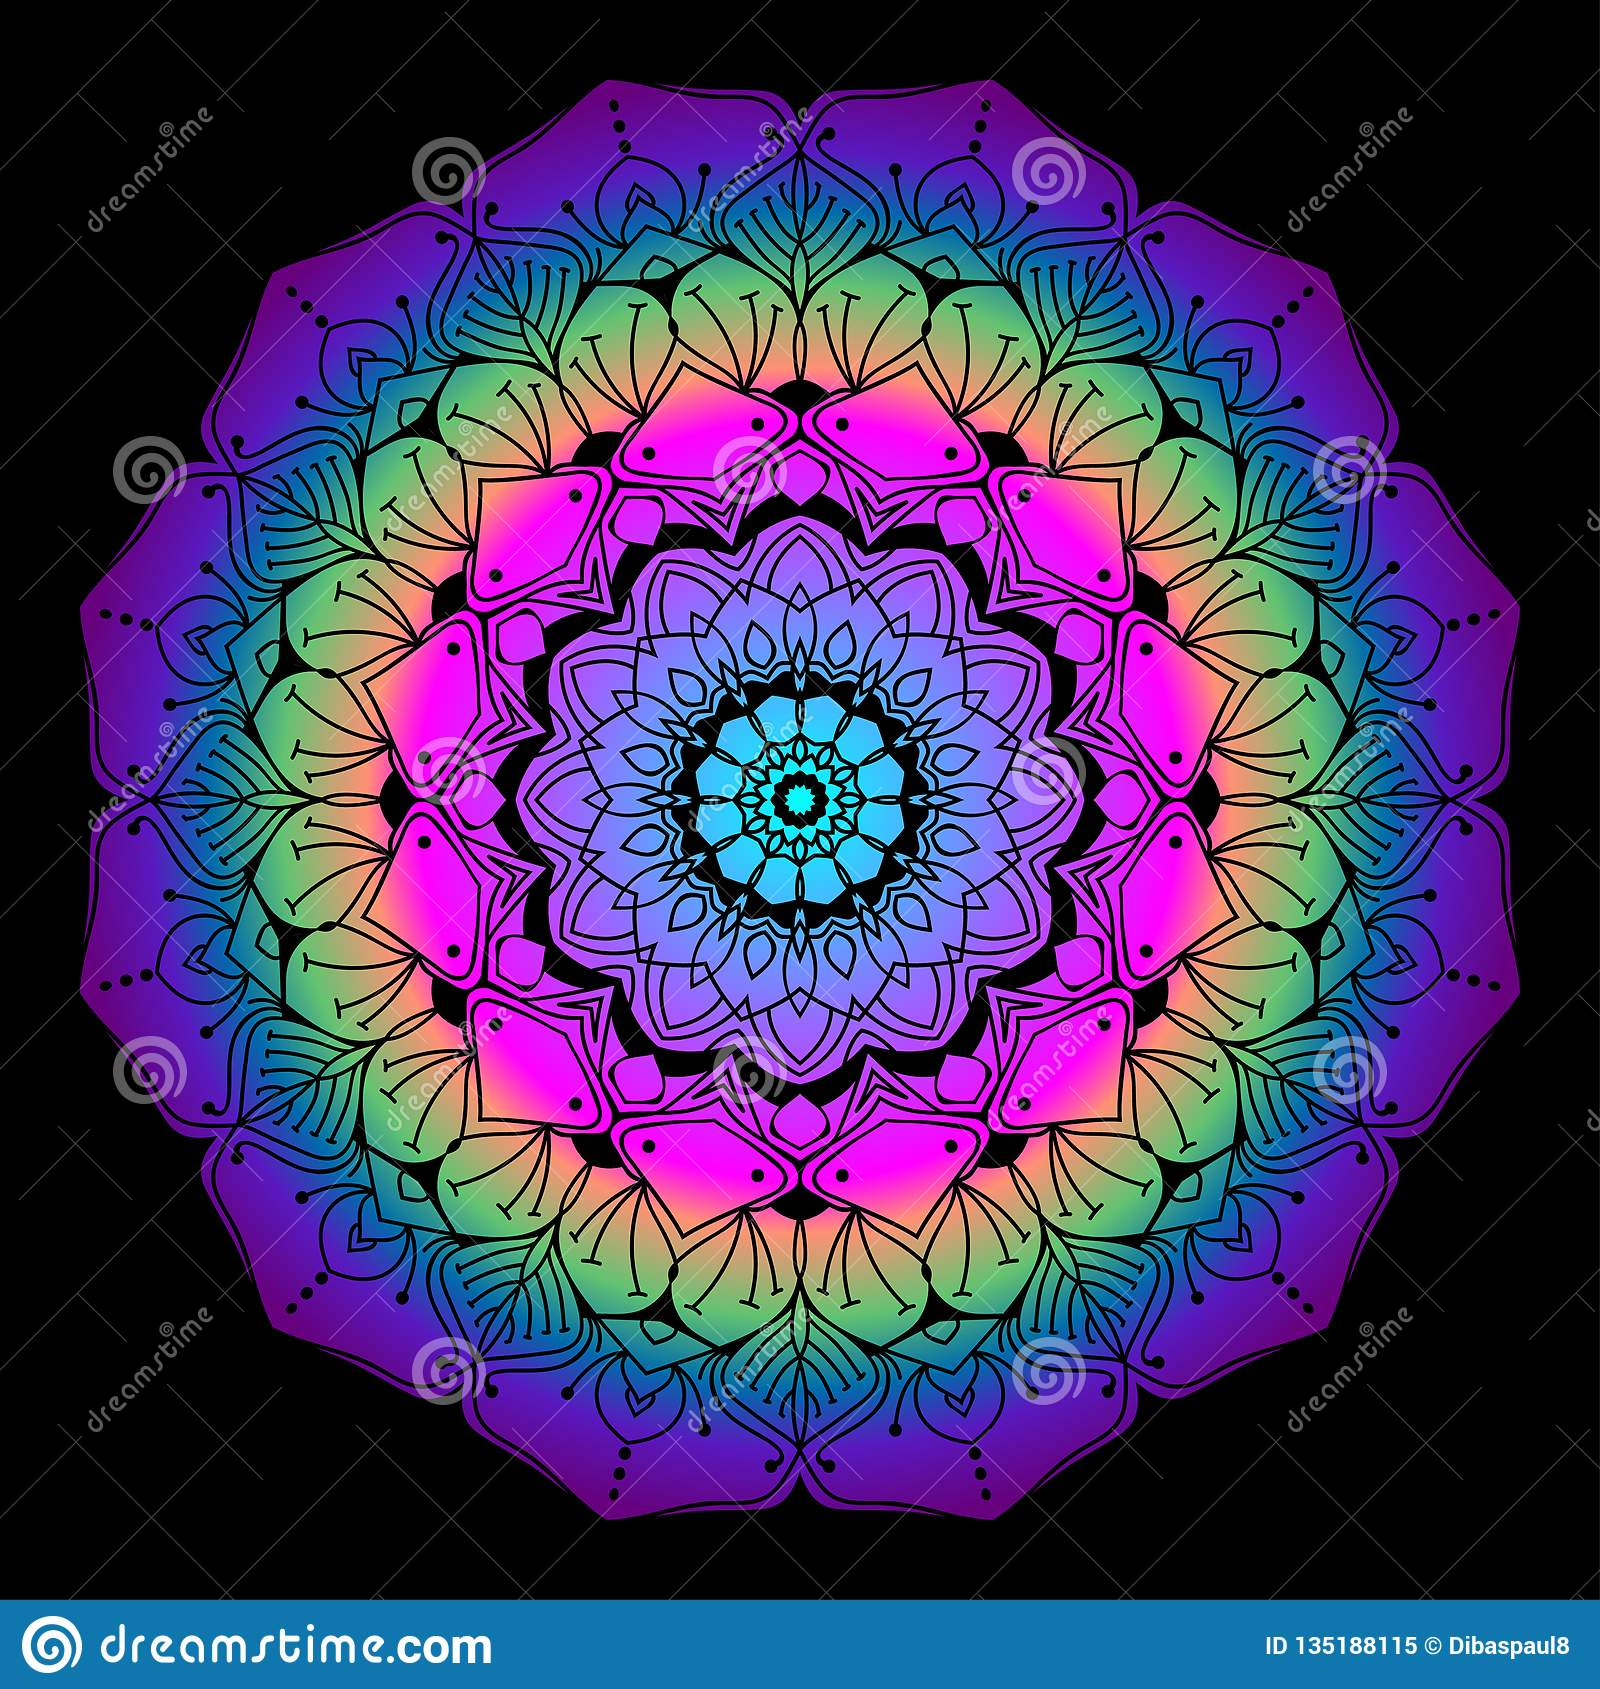 Colourful Mandala For Adult Coloring Page Stock Vector ...